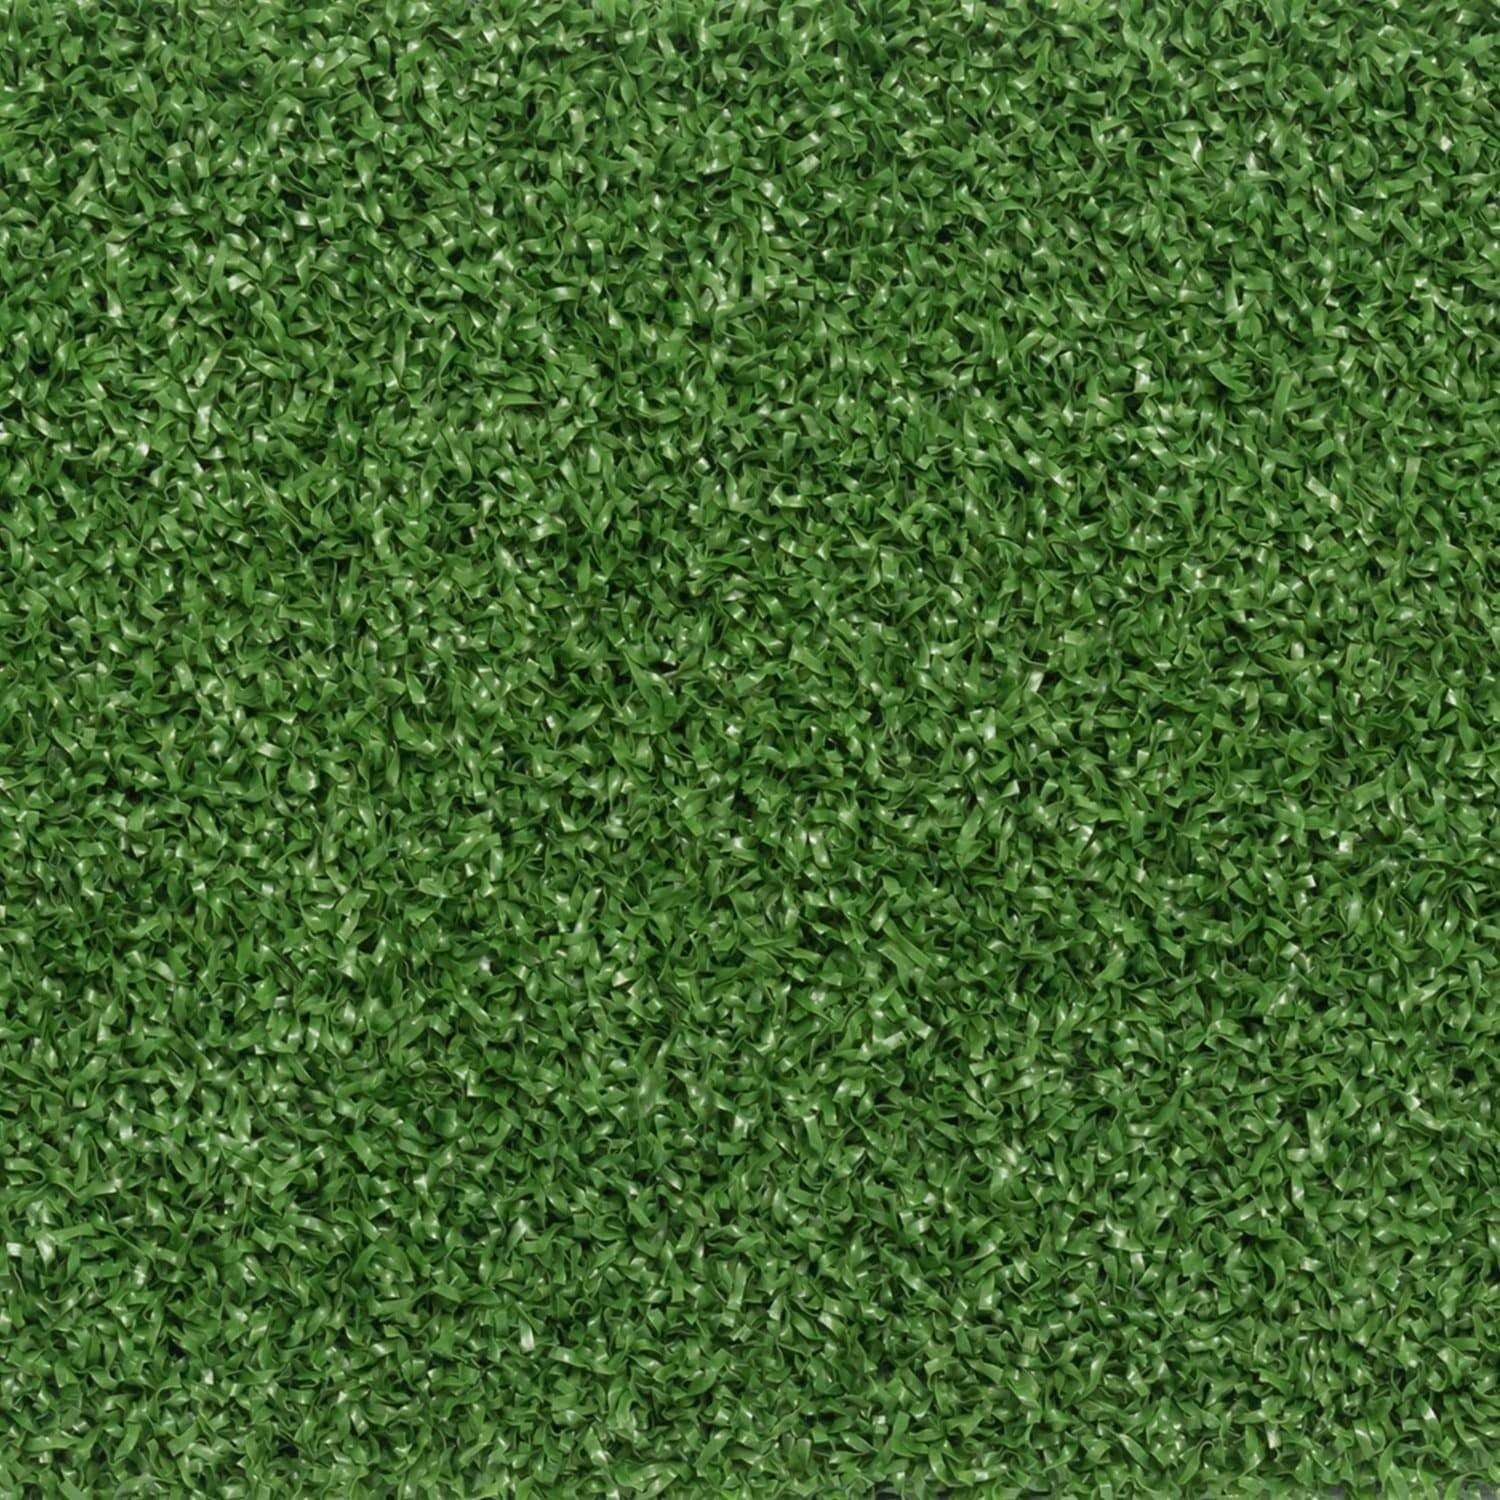 Artificial Grass Turf - HF Curl Turf